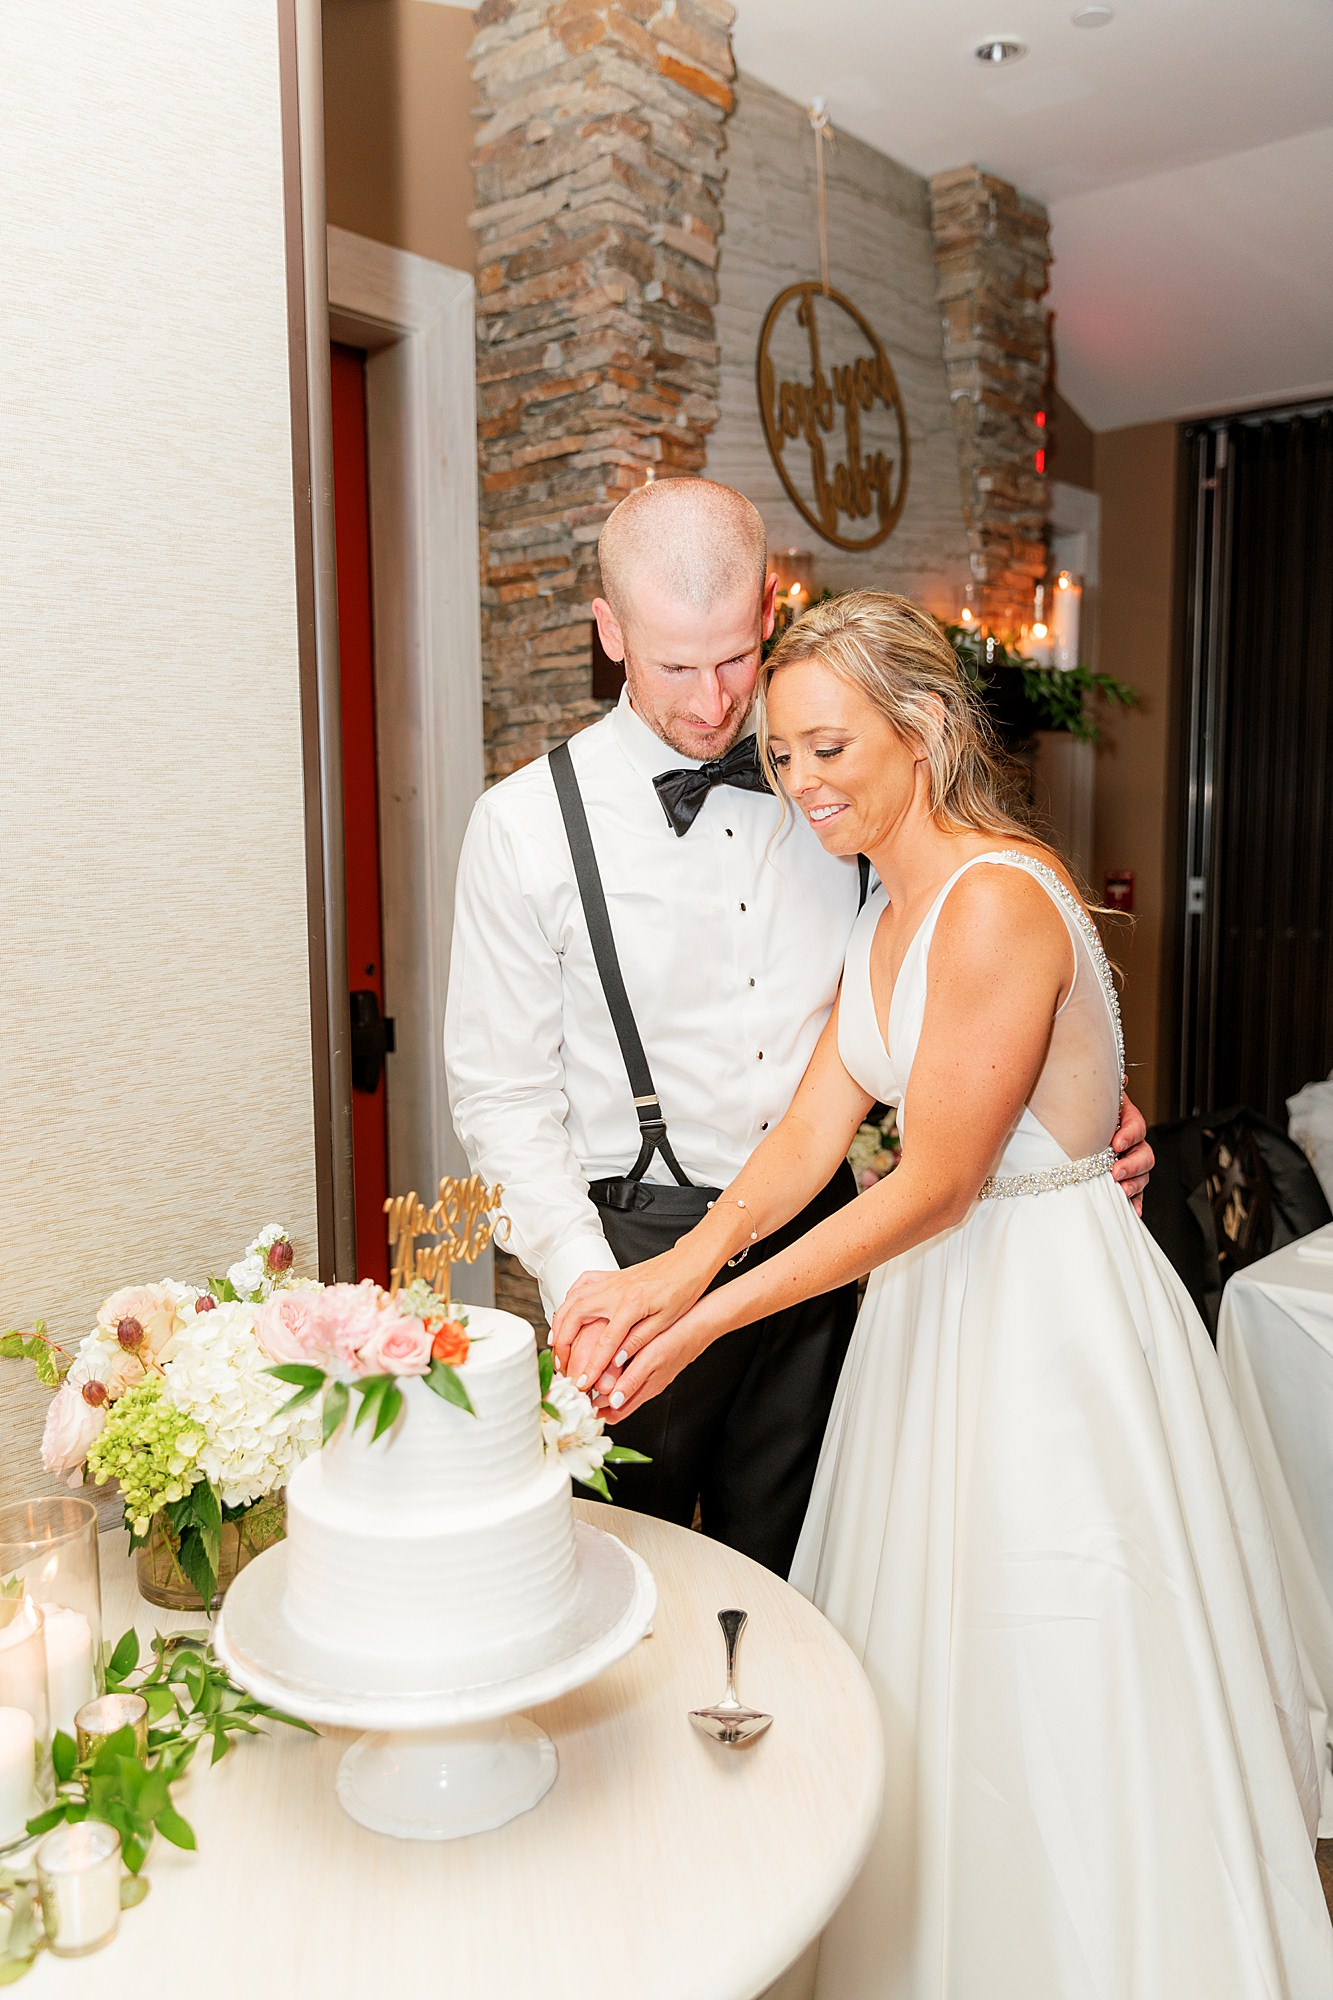 Natural and Vibrant Wedding Photography at the Reeds in Stone Harbor NJ by Magdalena Studios 0067